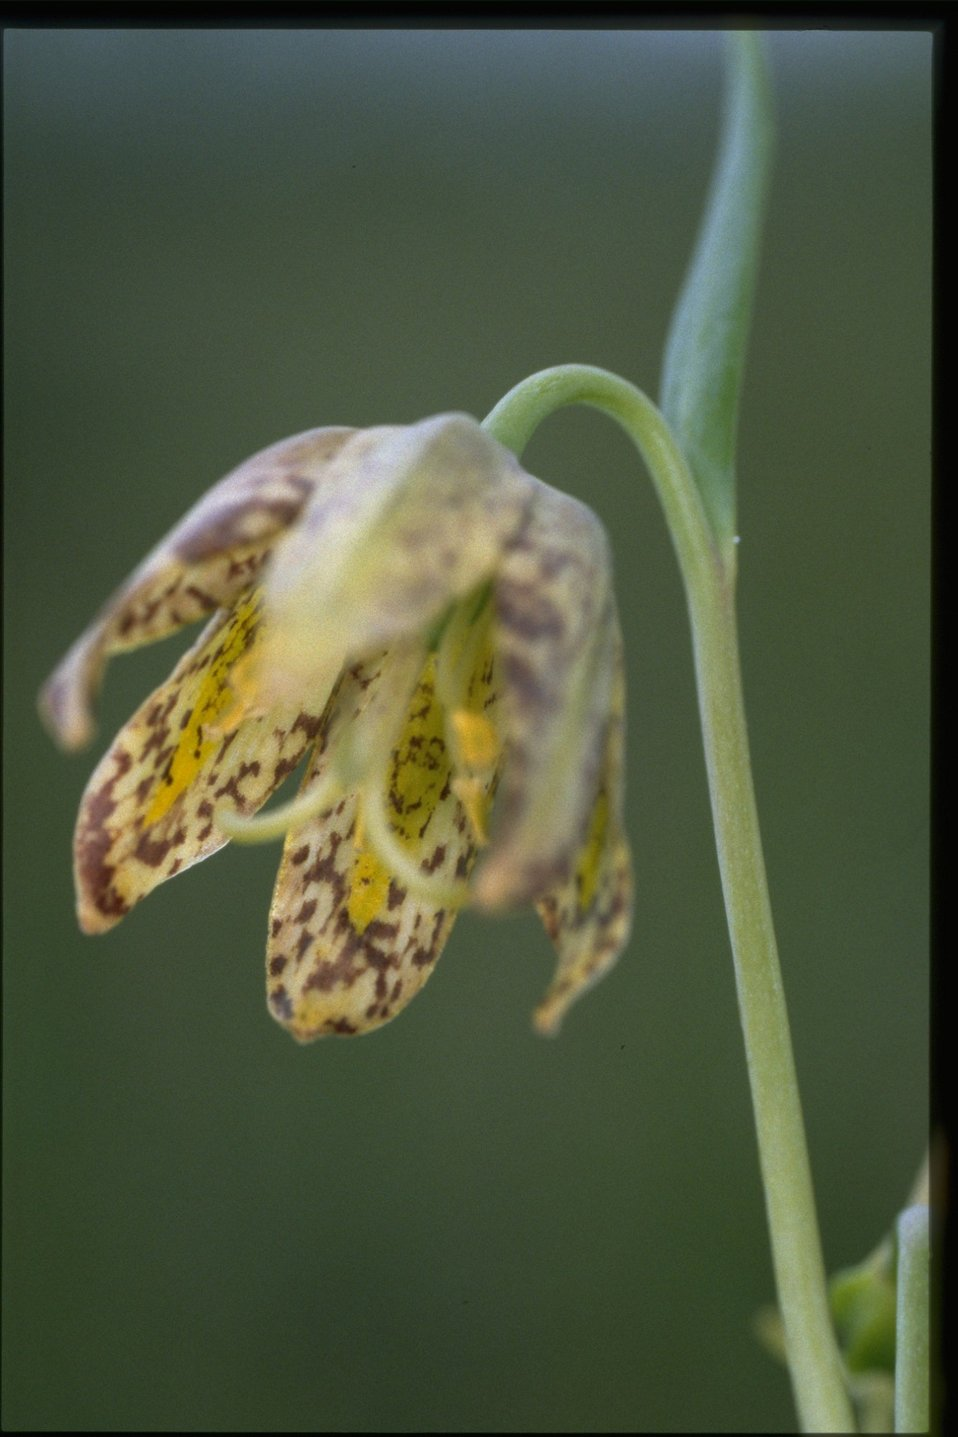 Closeup shot of Fritilaria affine.